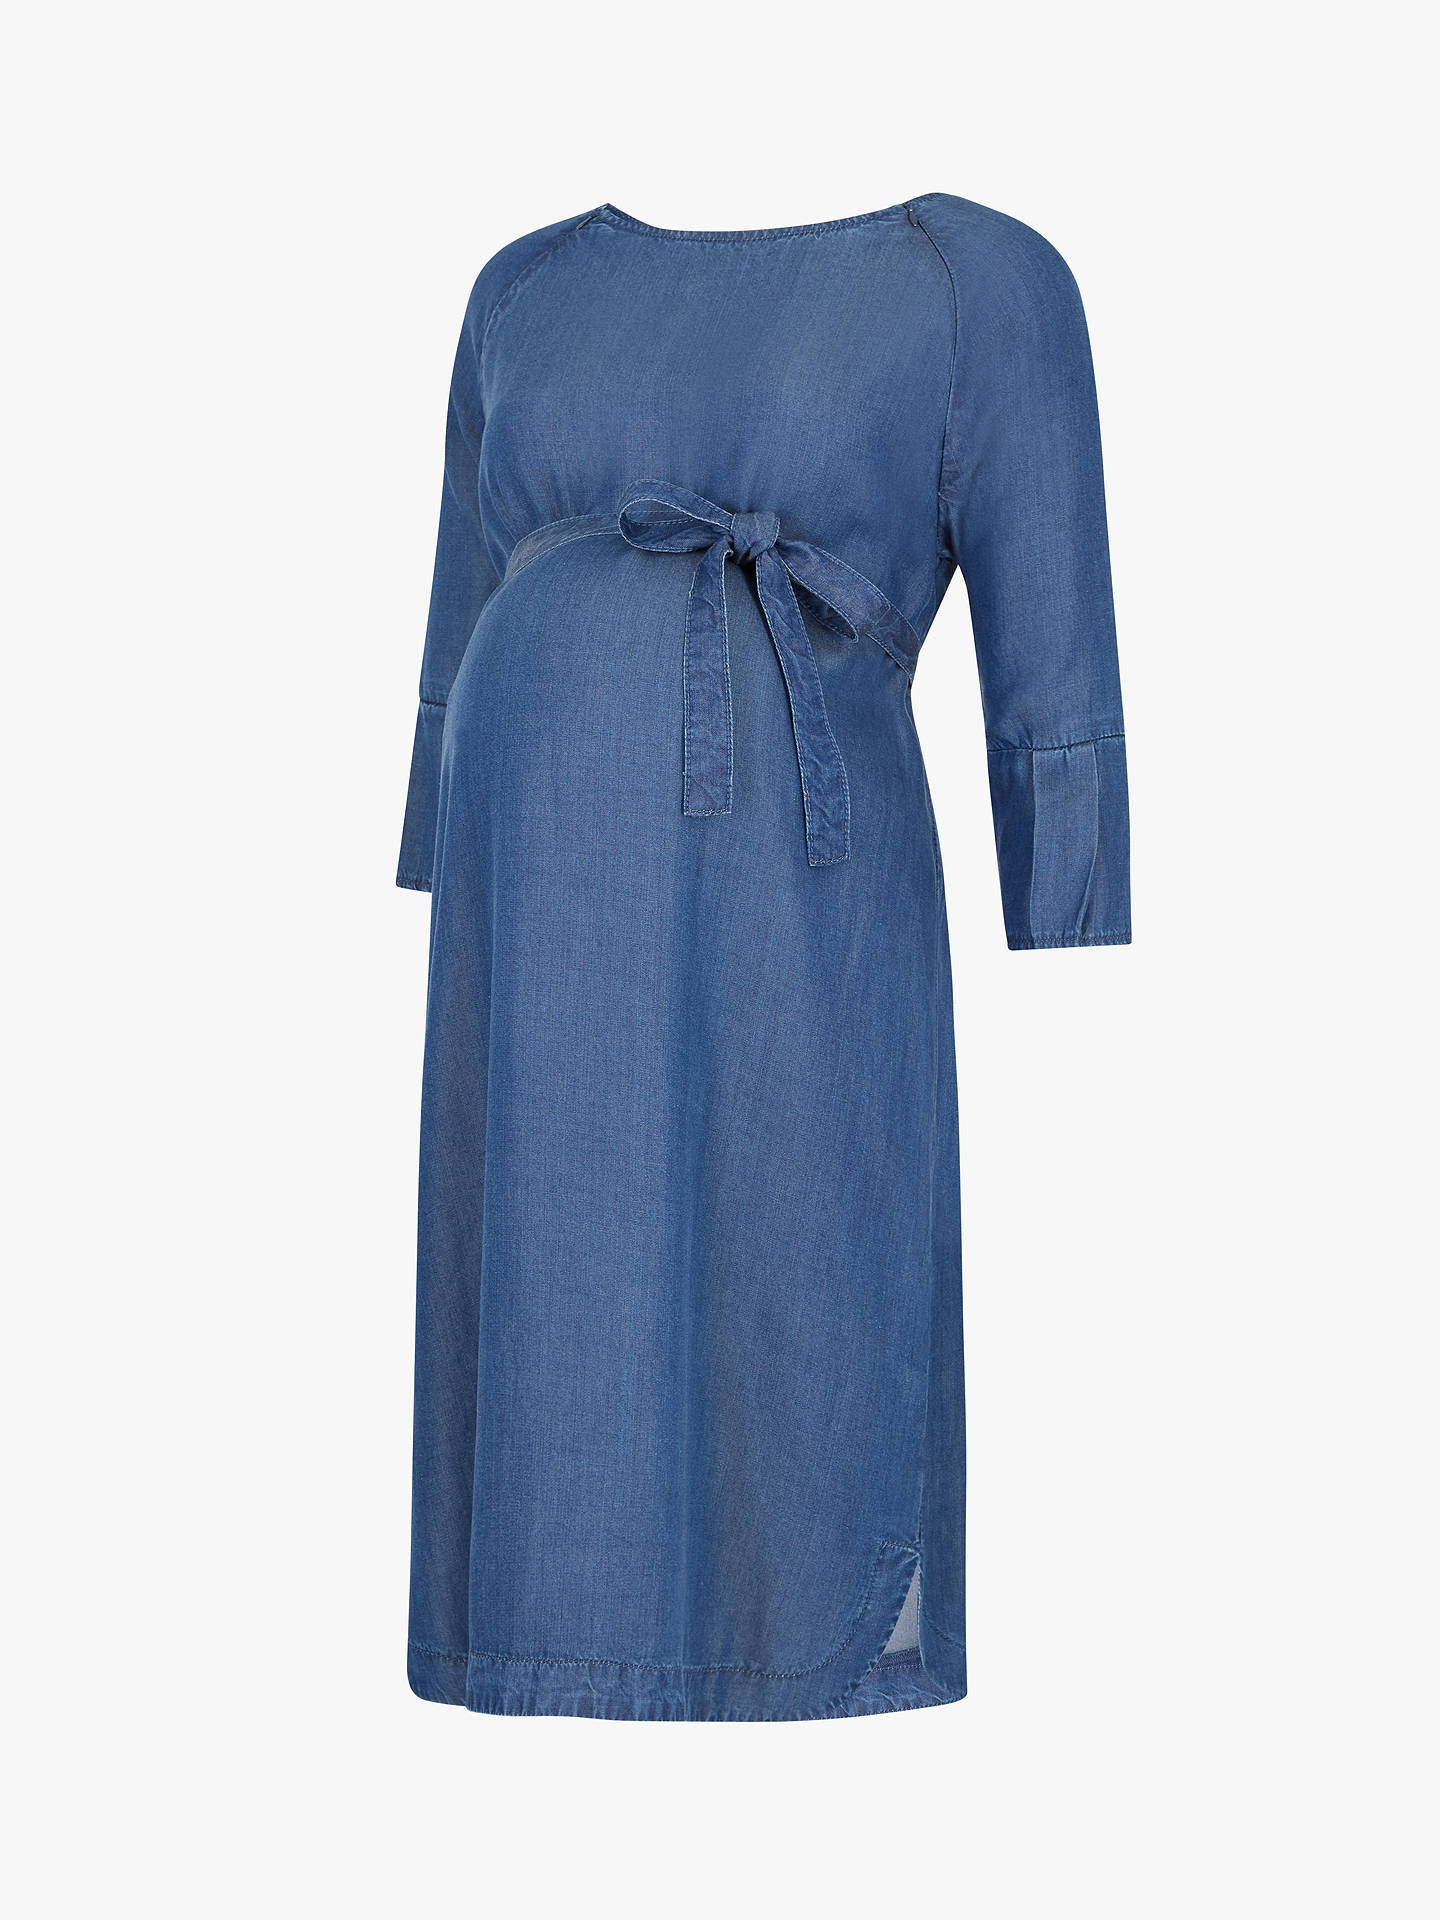 b2df5bc6158d6 ... Buy Séraphine Bernice Chambray Maternity Dress, Blue, 10 Online at  johnlewis.com